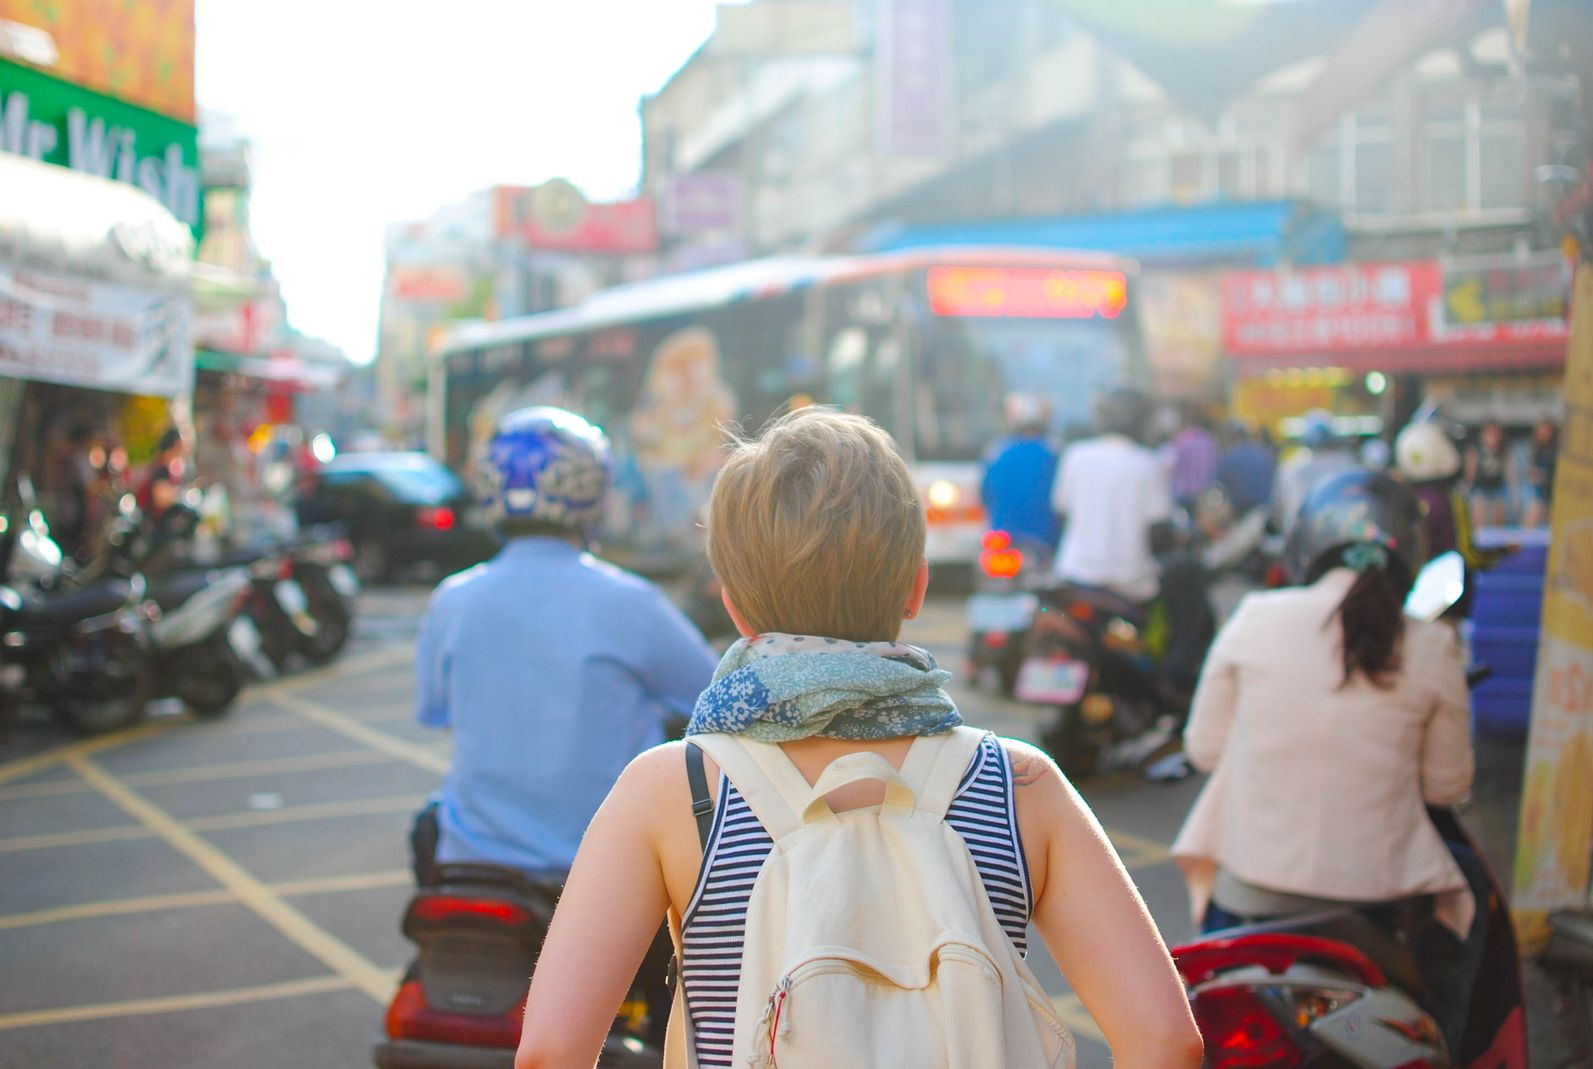 Traveling female backpacker with her back to the camera, facing a busy street on a foreign country, indicating that travel promotes creativity, a career skills you learn from traveling